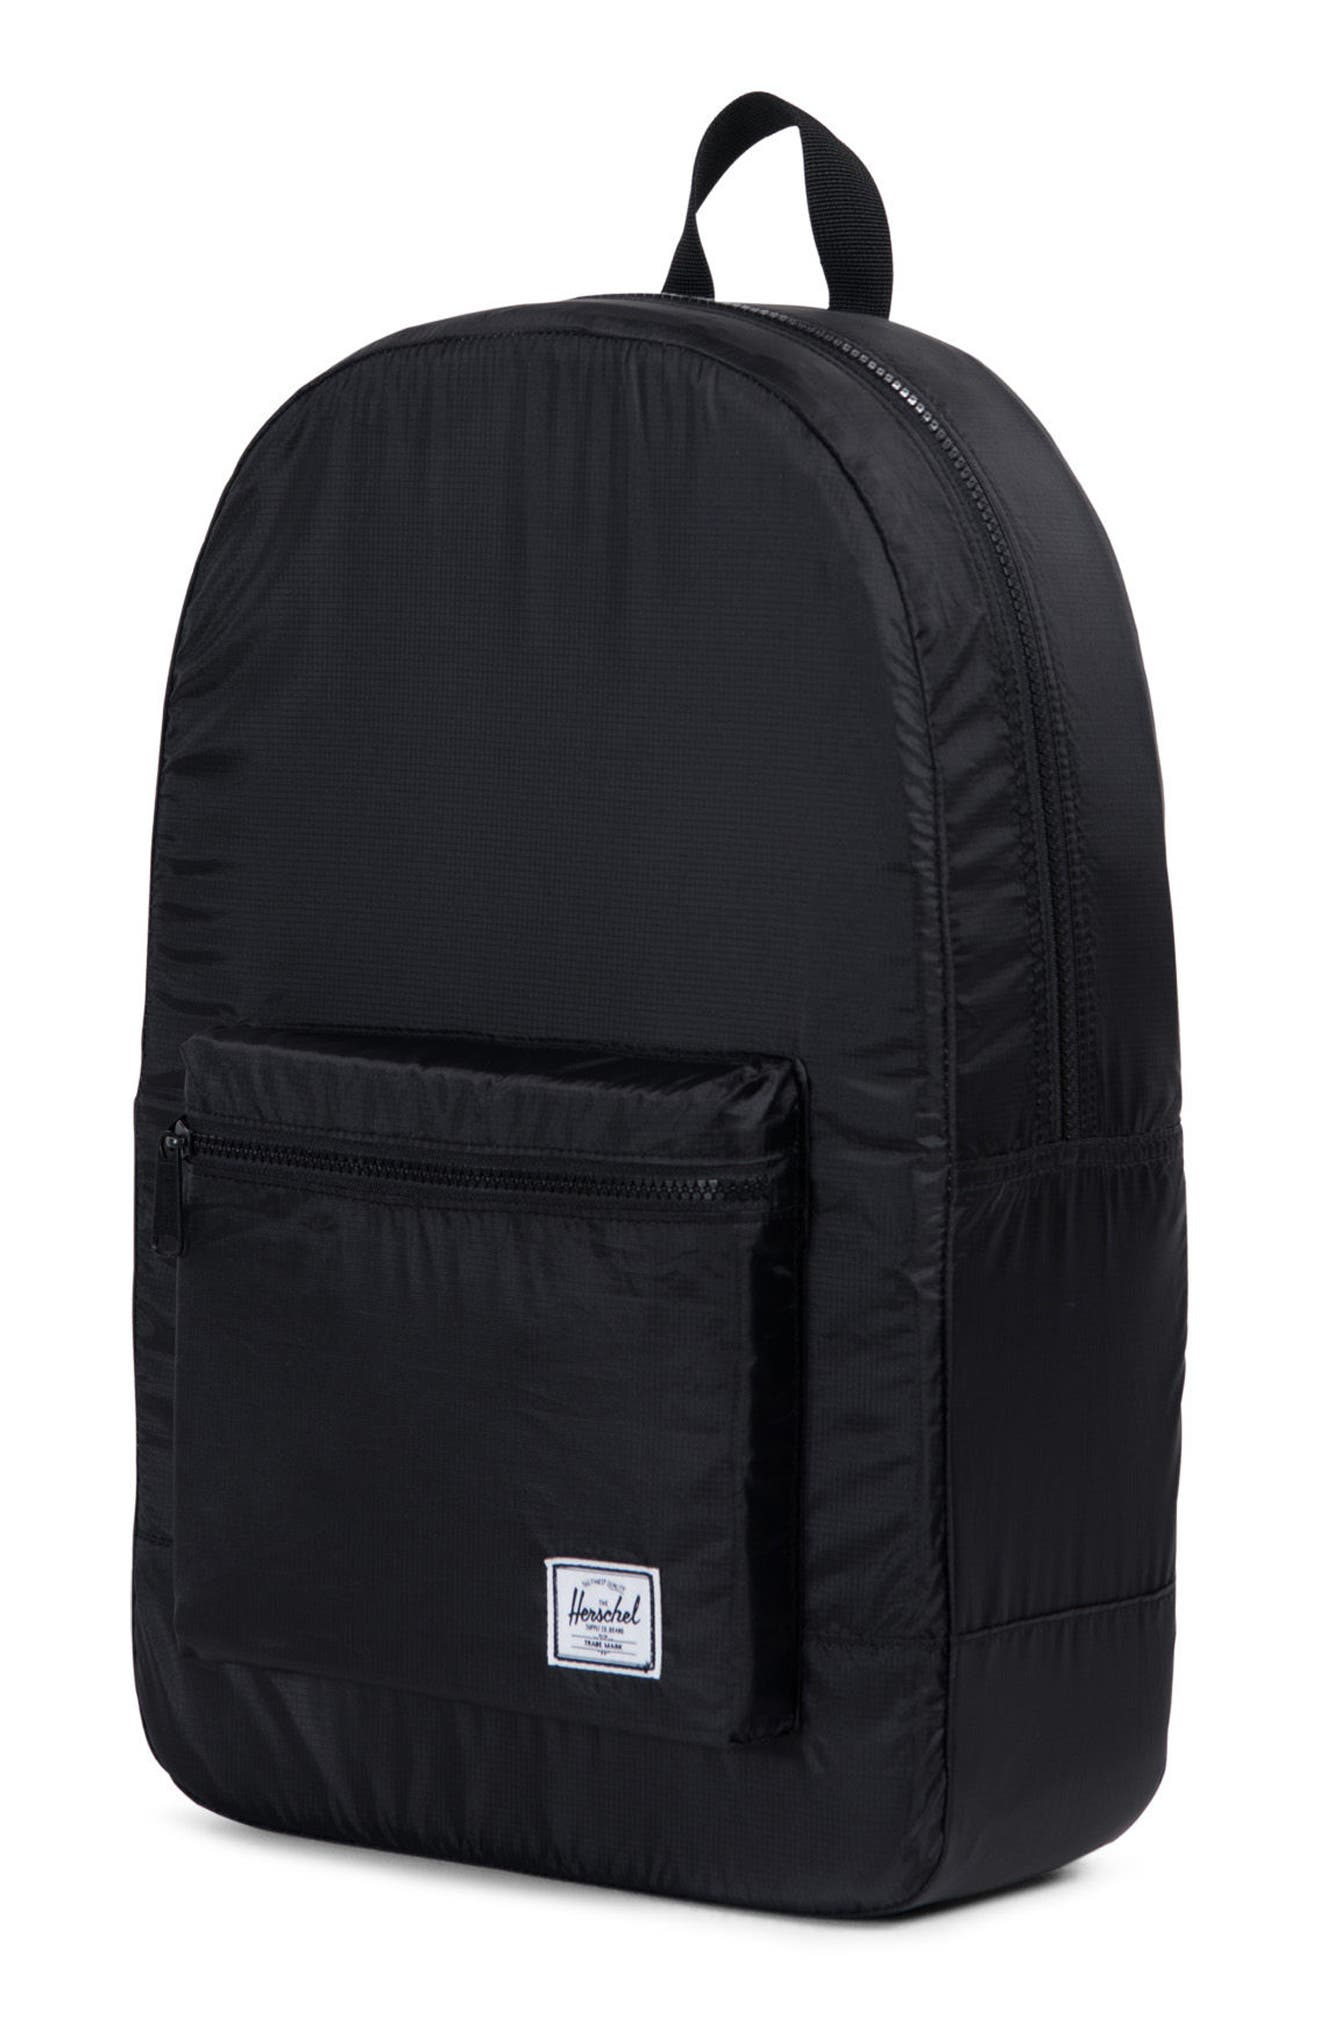 Packable Daypack,                             Alternate thumbnail 3, color,                             001